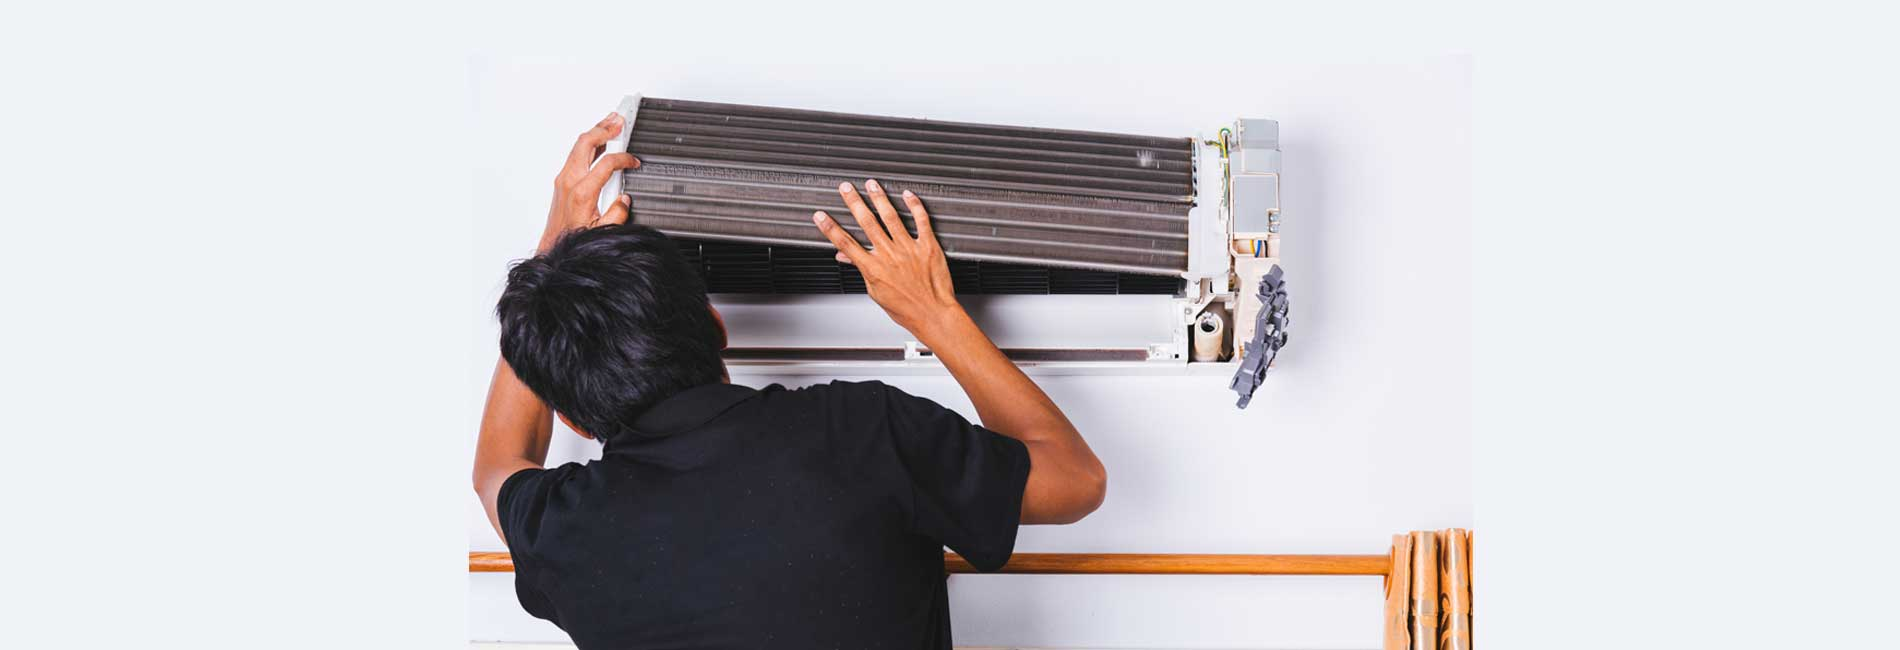 LG AC Uninstallation and Installation in Vadapalani